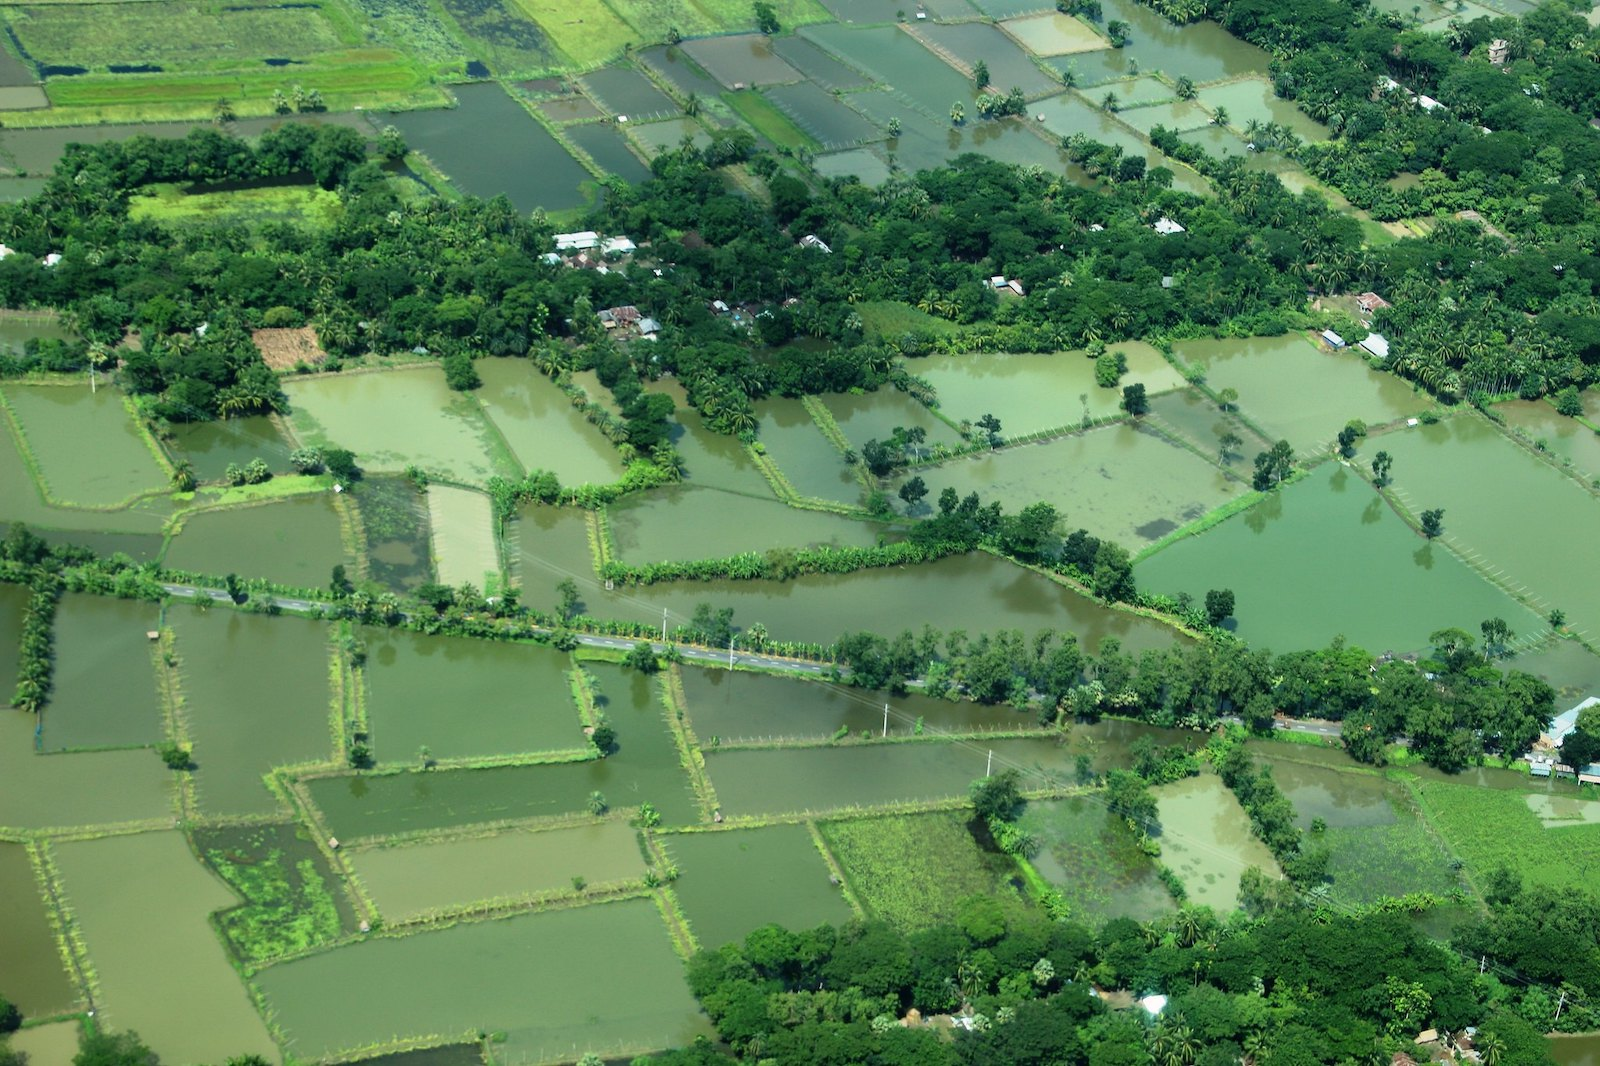 Waterbodies from the air between Dhaka and Khulna, Bangladesh